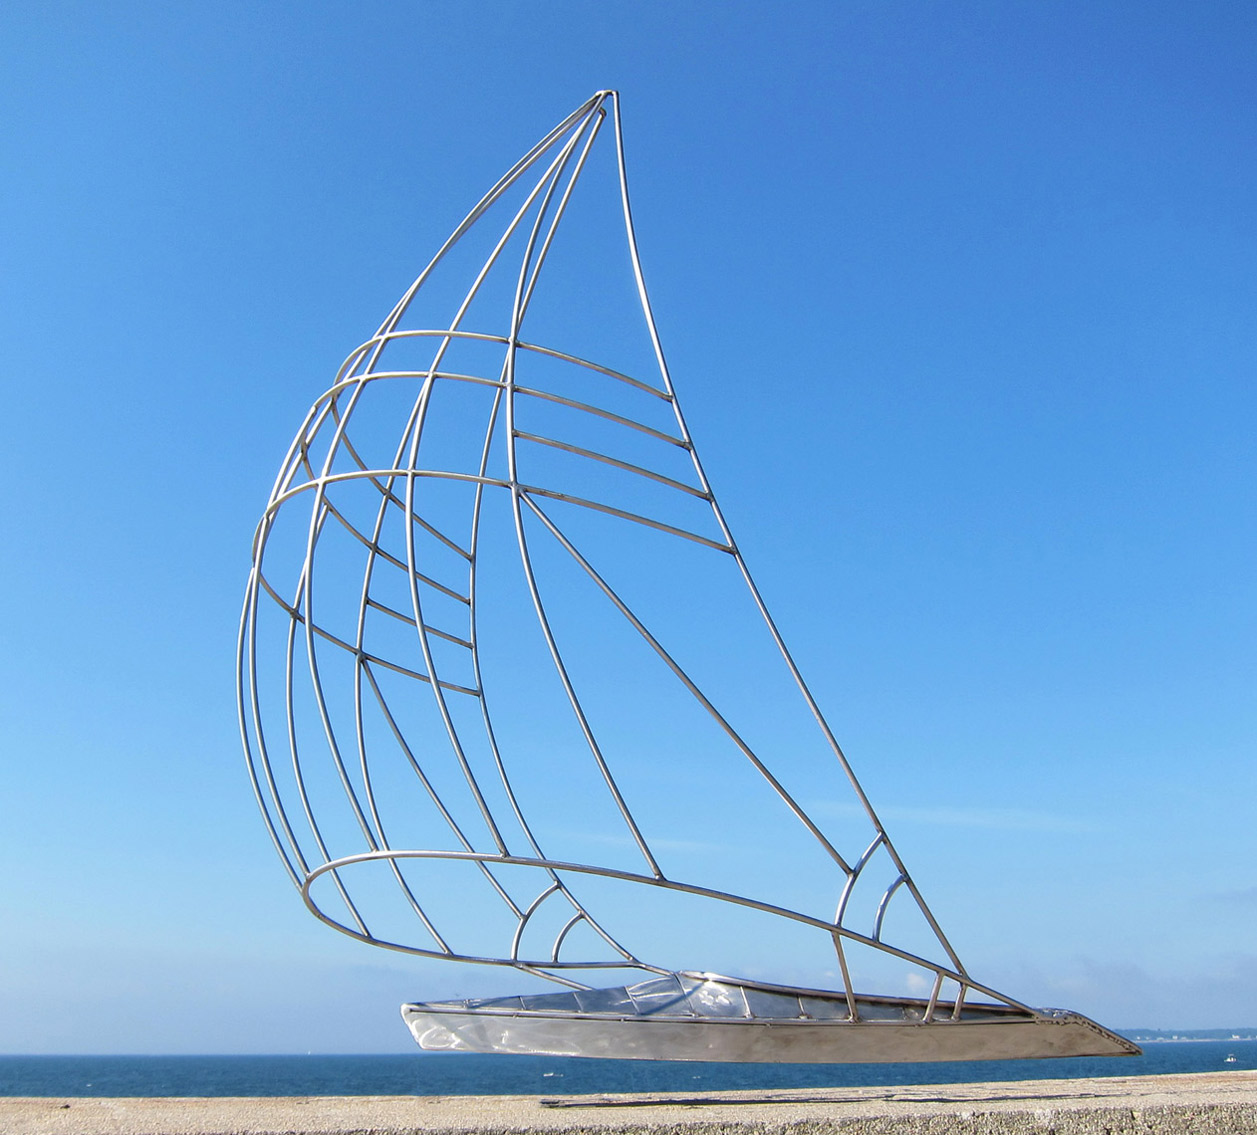 Sail vessel I a sail boat sculpture by Peter Diepenbrock